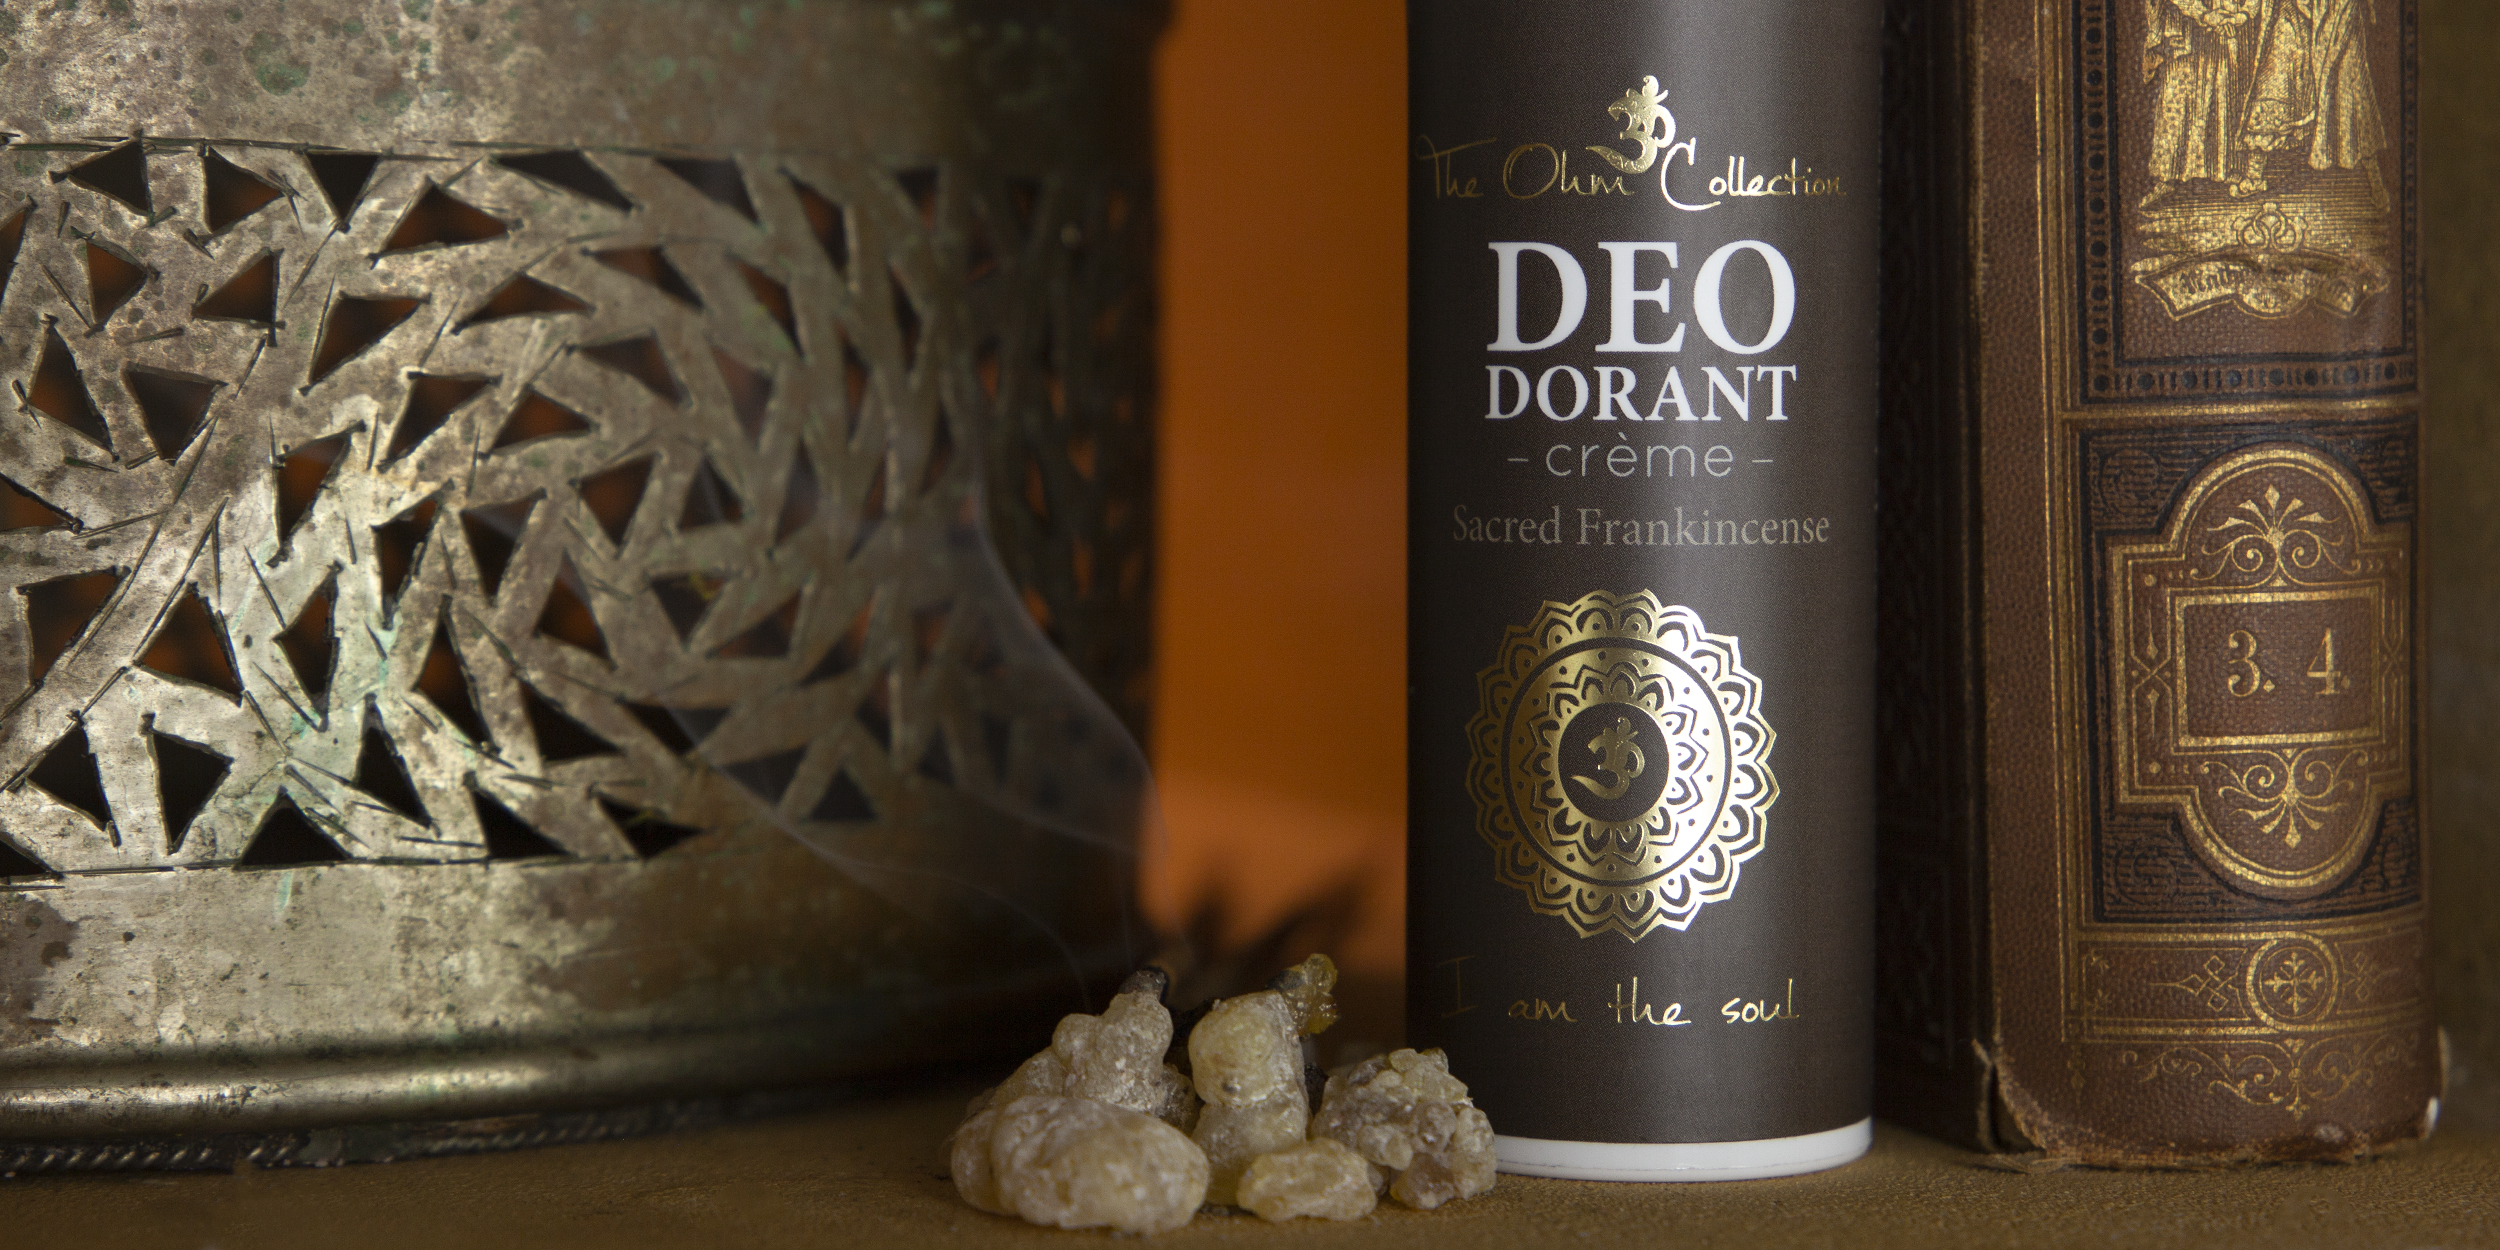 deodorant creme frankincense aluminium free safe effective organic natural